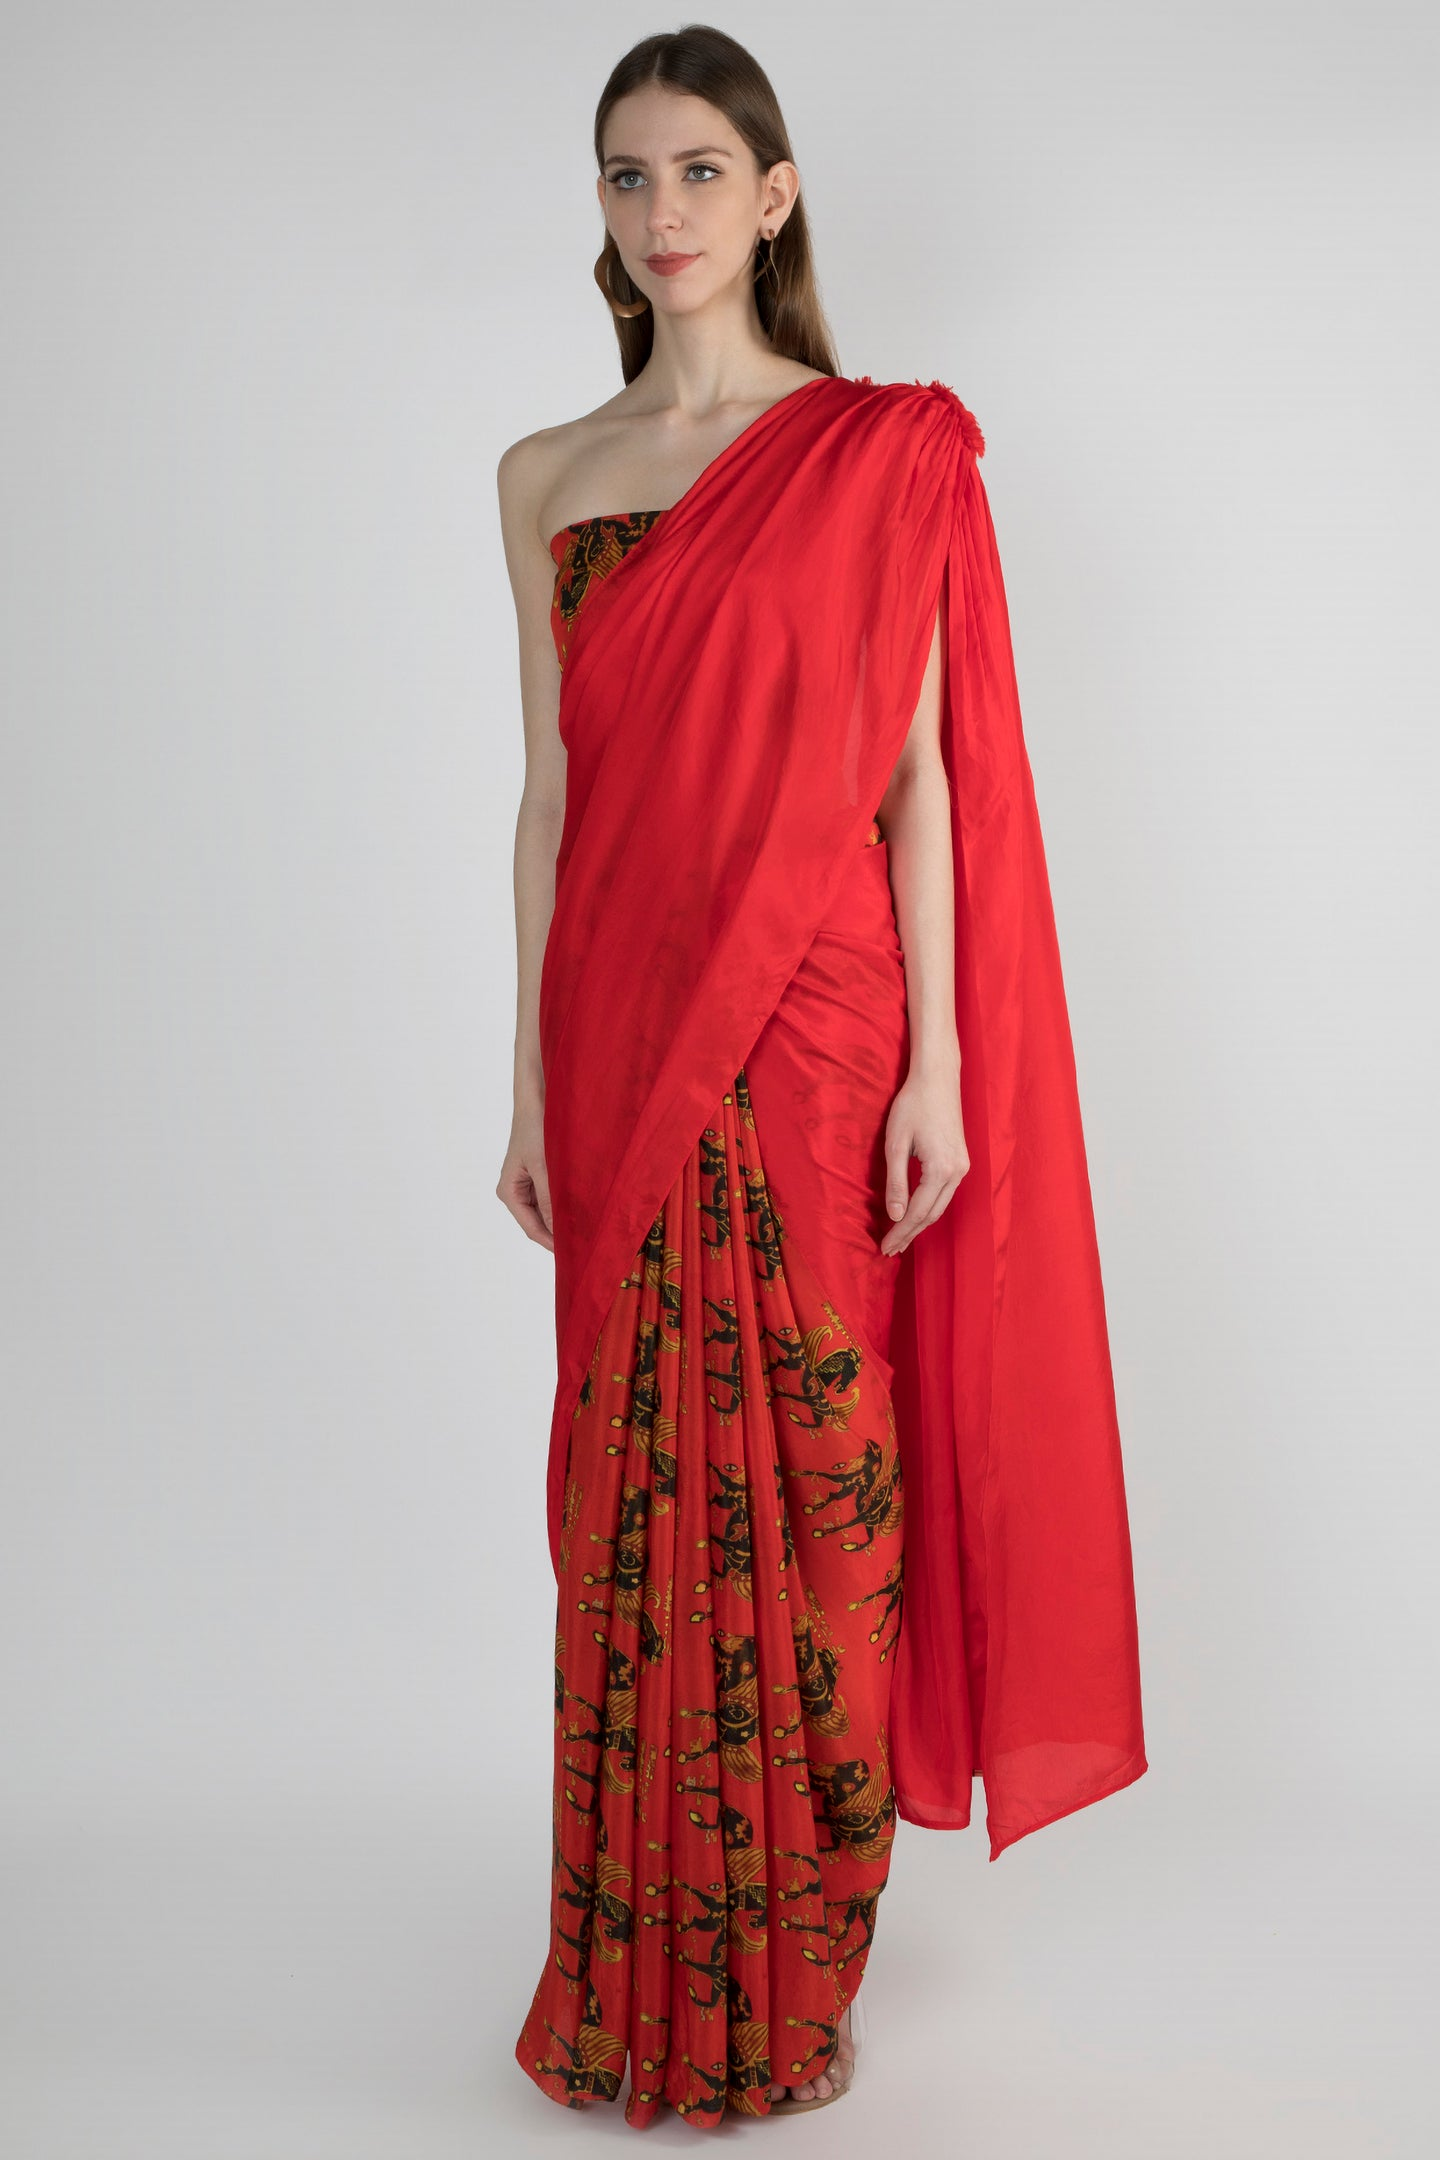 RED PATCHWORK PANEL GATHERED SARI WITH FRAY DETAIL AND RED LEGEND PRINT PLEATS WITH BLOUSE PIECE - The Grand Trunk